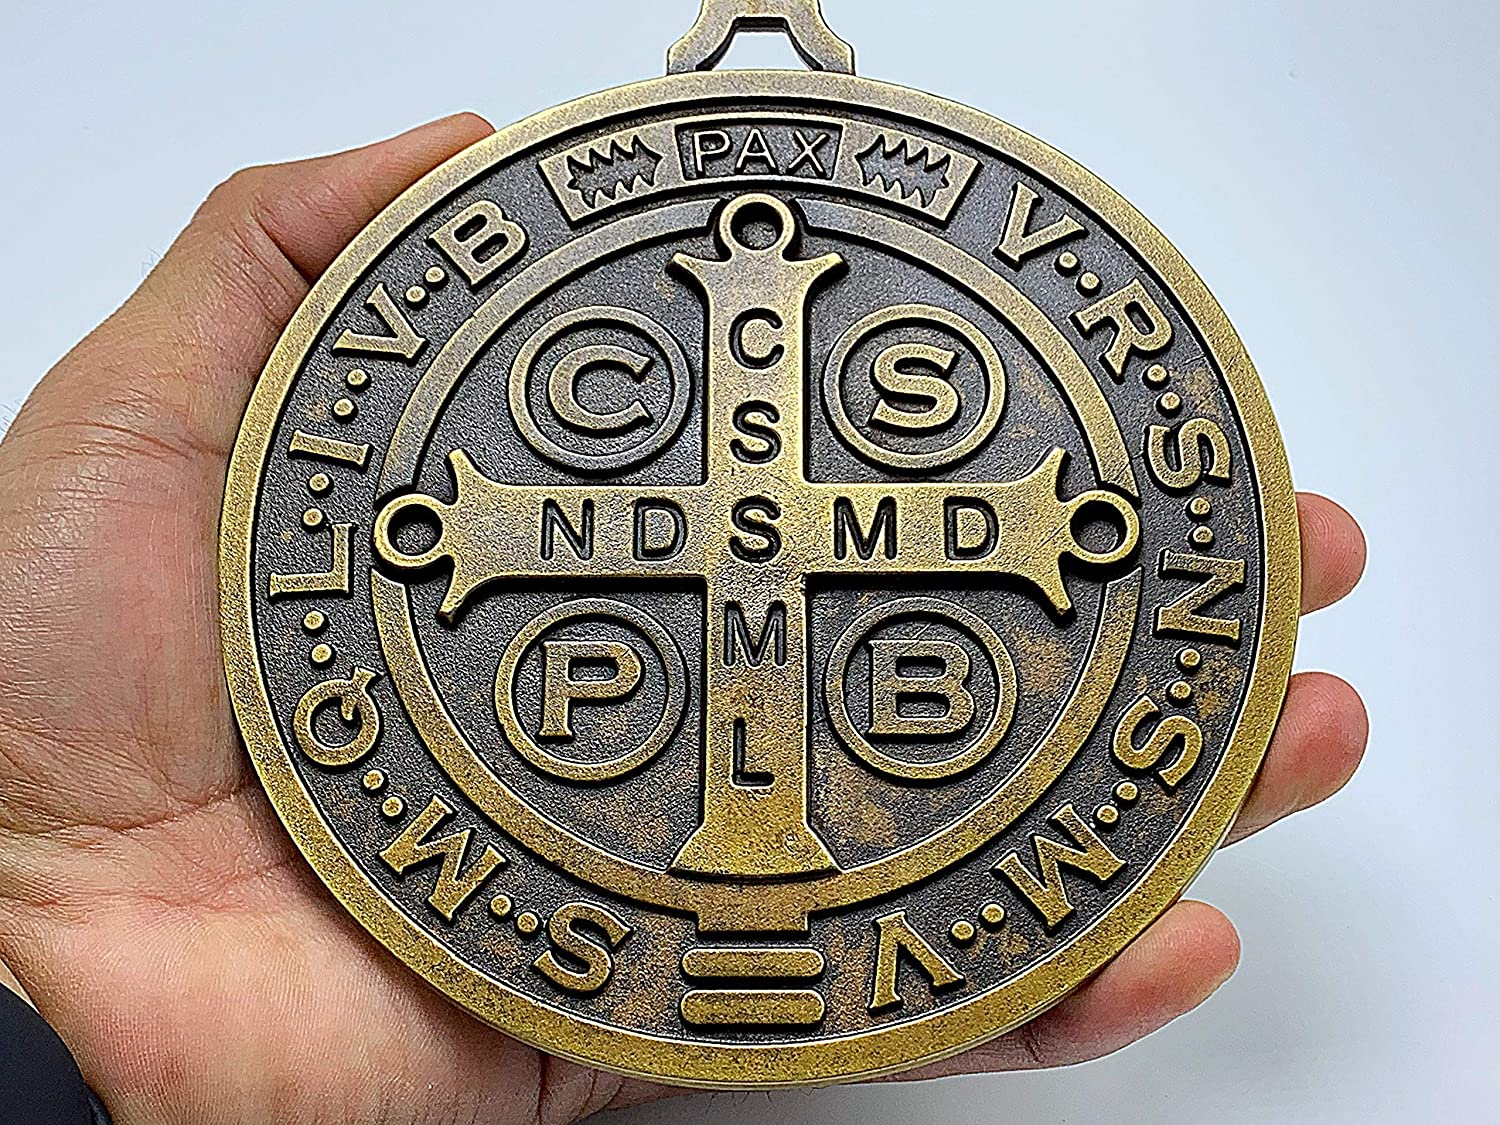 EXTRA LARGE 5 INCH ST BENEDICT CROSS MEDAL VINTAGE BRASS TONE FINISH FOR WALL OR DESK DISPLAY//MEDALLA DE SAN BENITO EXTRA GRANDE 5 PULGADAS//